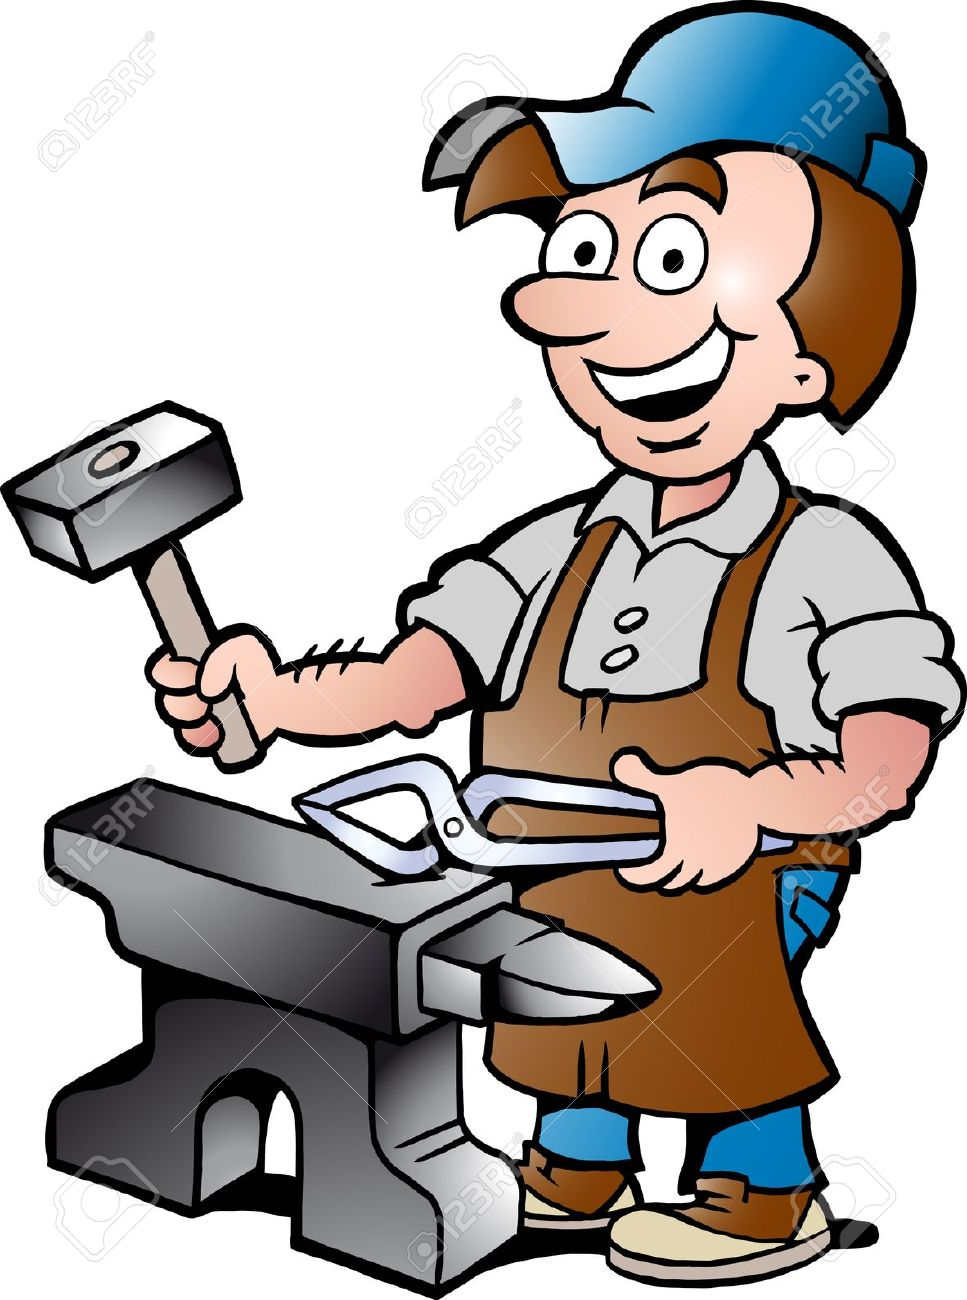 Blacksmiths at work clipart.